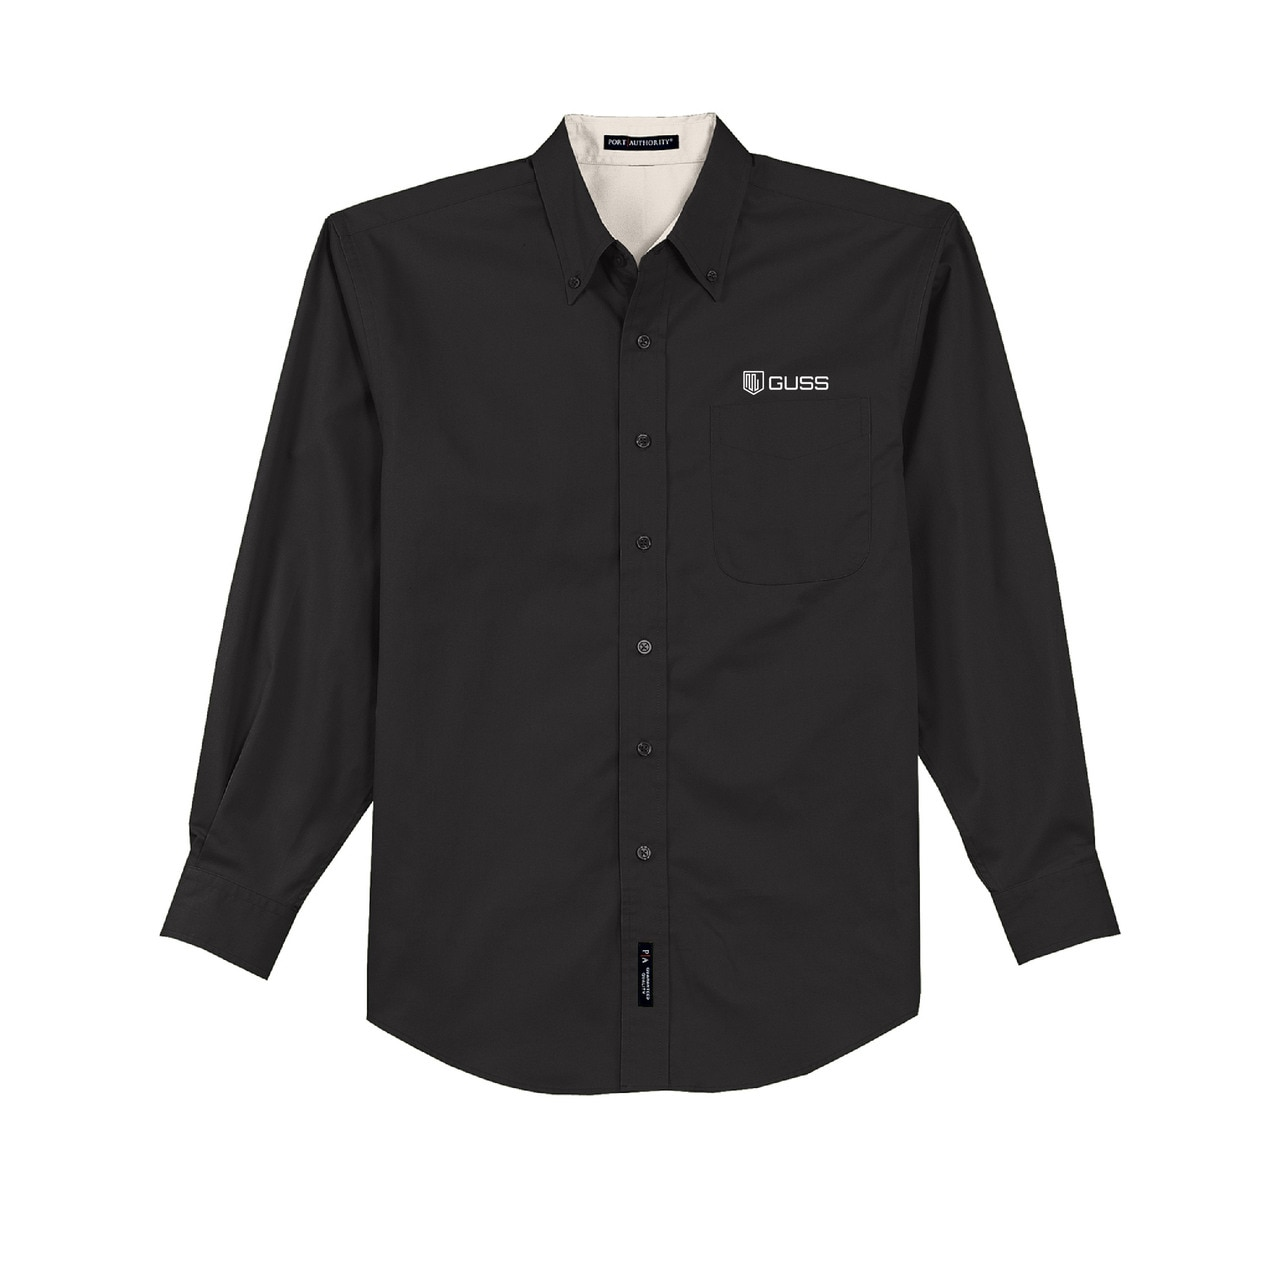 Men - TALL - Port Authority Long Sleeve Easy Care Shirt - Black